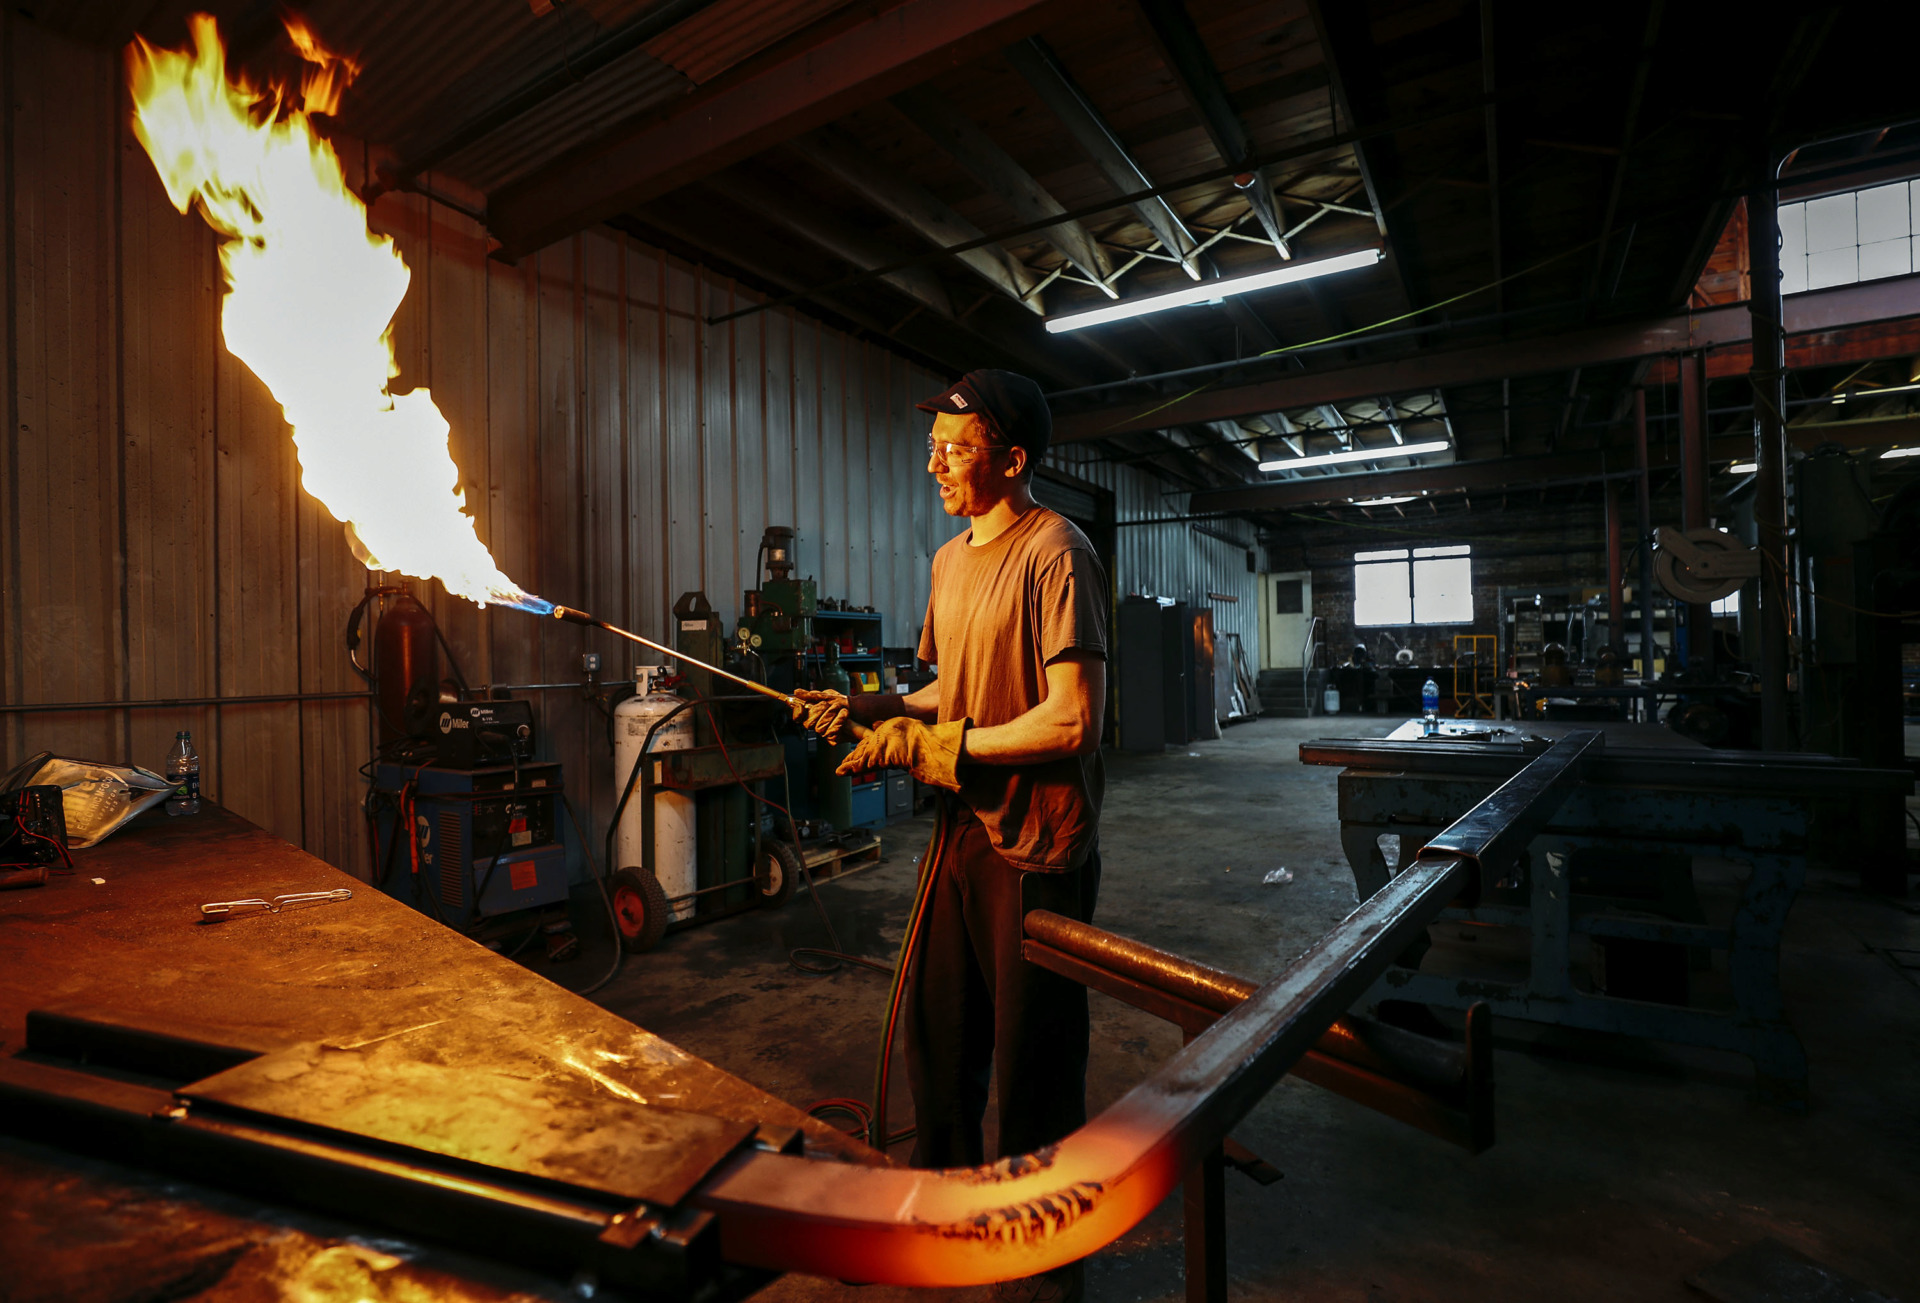 <strong>Lewis Body, a former blacksmith apprentice for the museum, opened his own shop near Presidents Island last year. Body's work ranges from large-scale public sculpture to custom architectural design work for both local and out-of-state clients.</strong> (Houston Cofield/Daily Memphian)